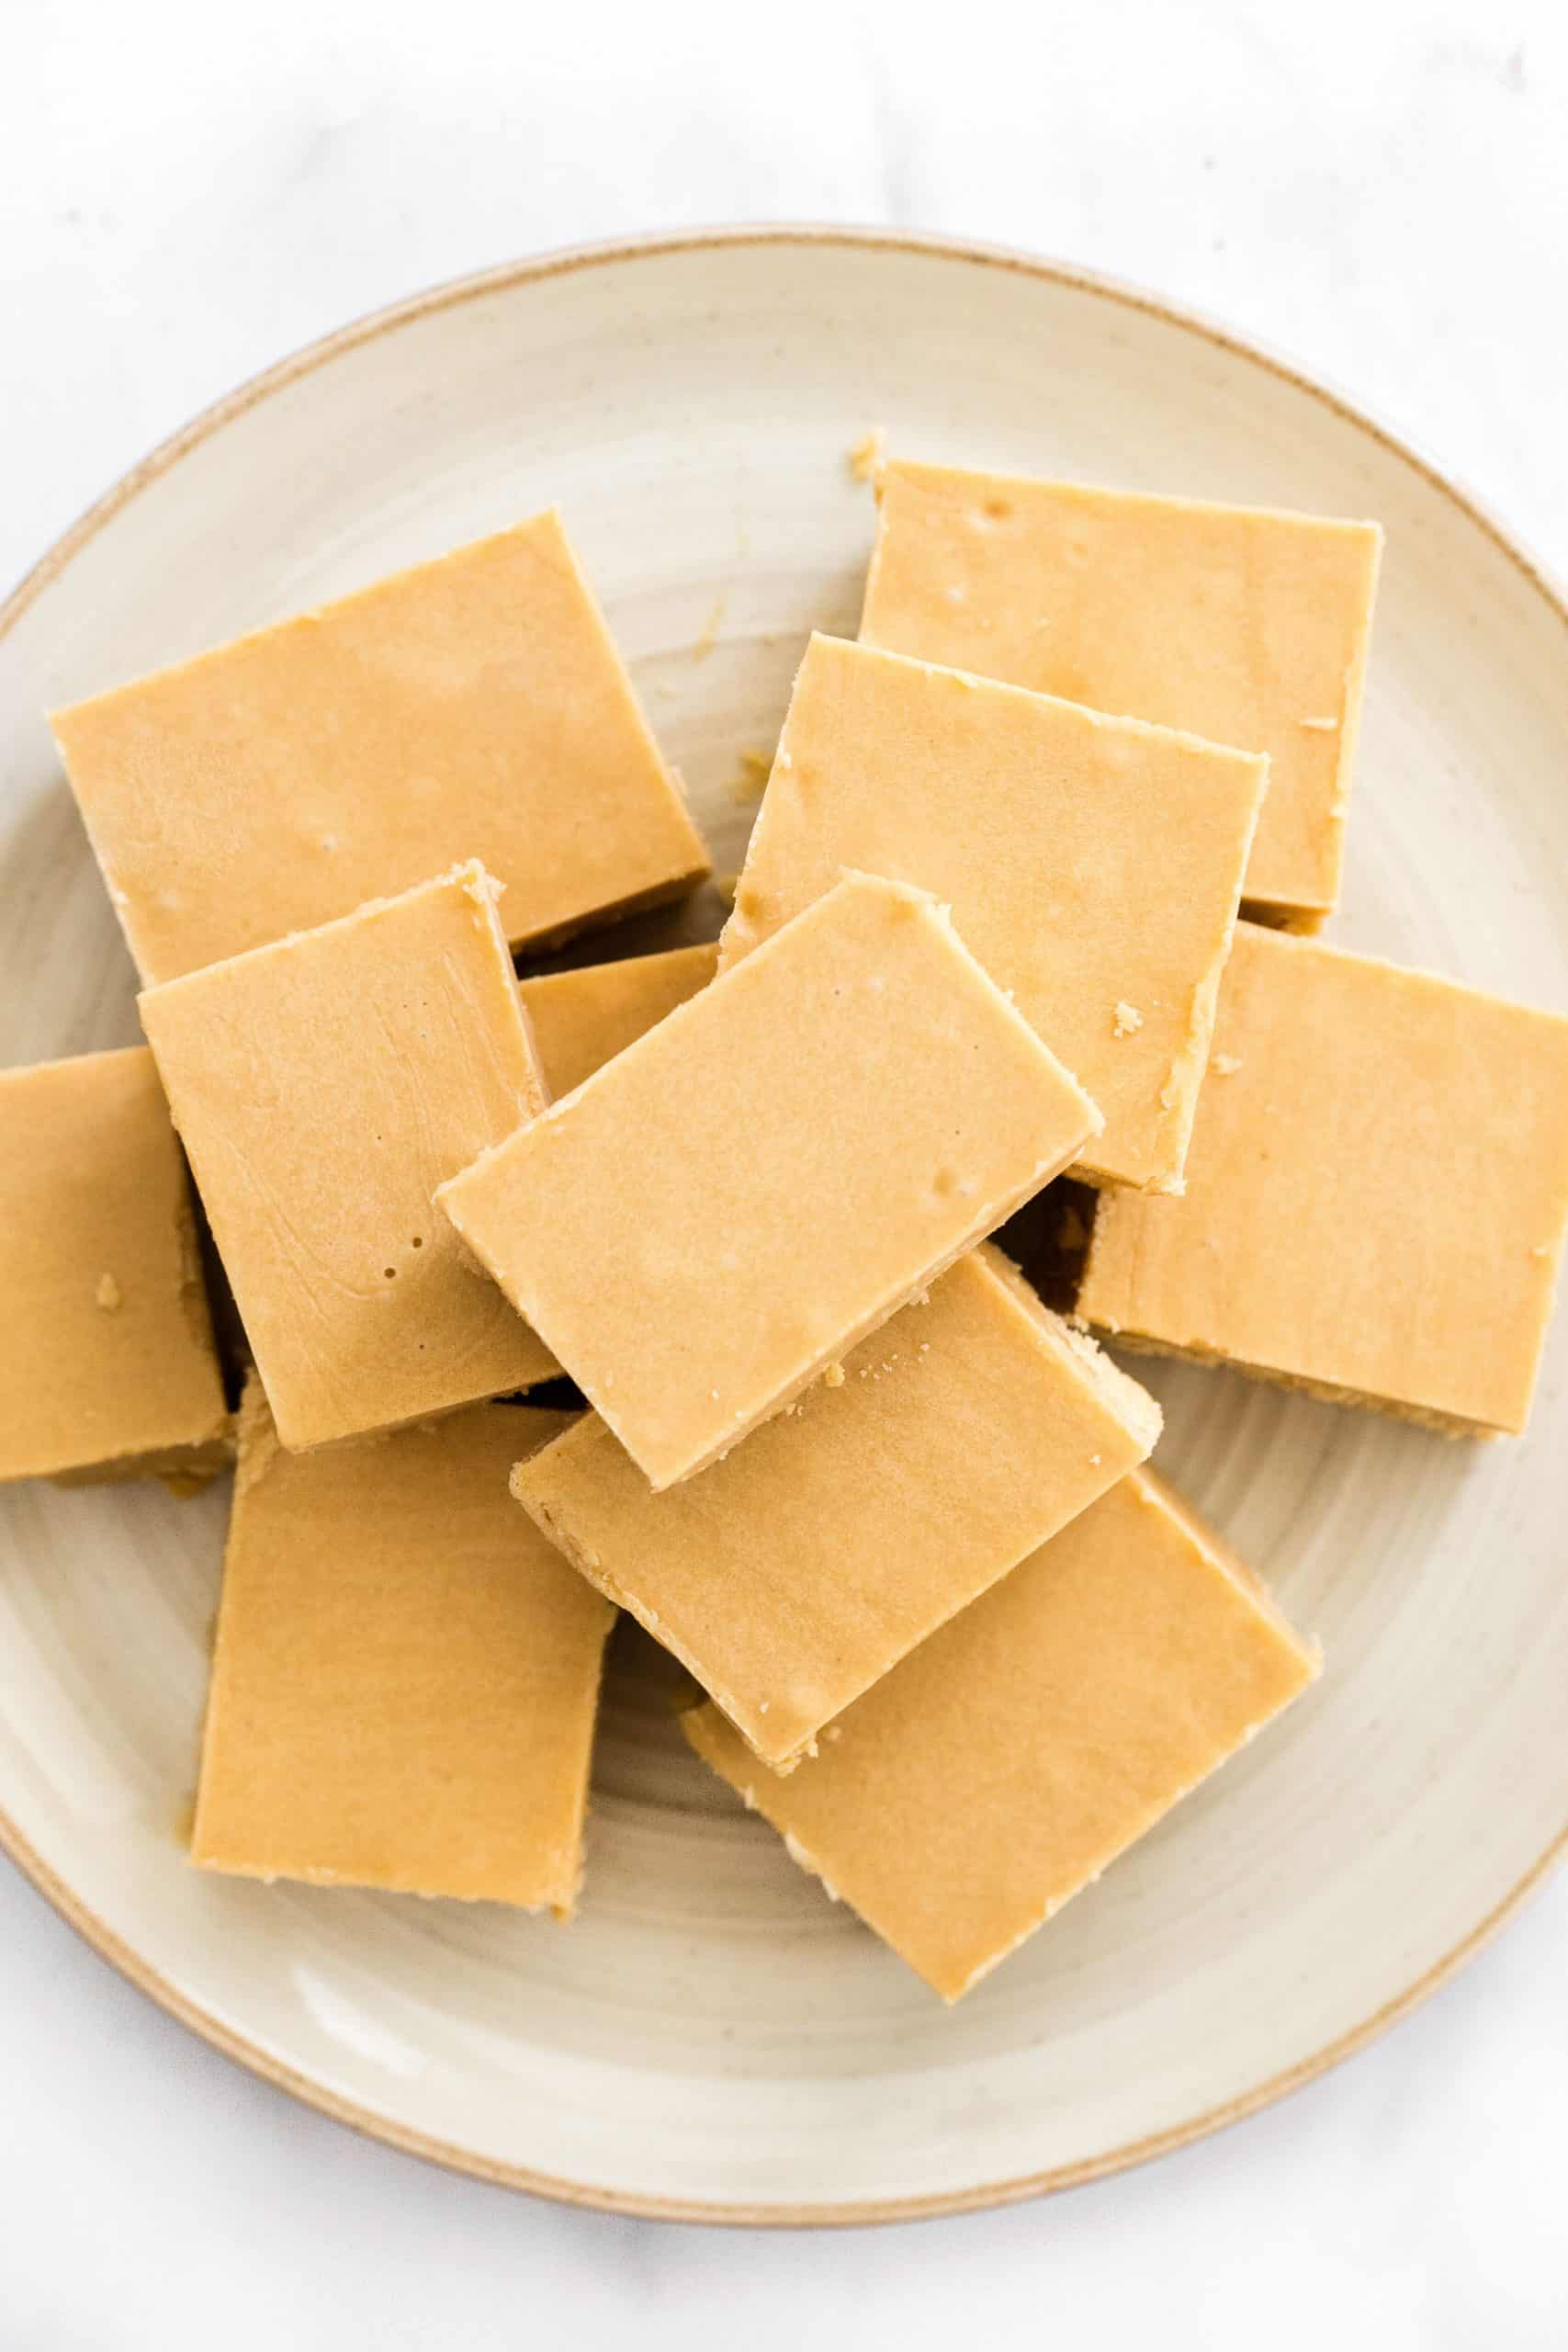 A plate full of peanut butter fudge squares.